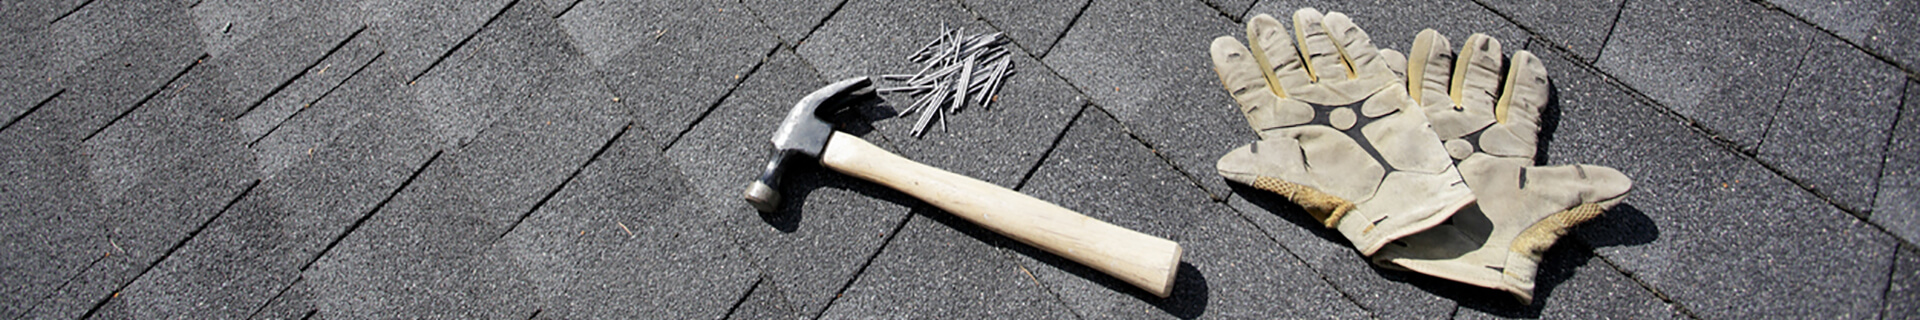 3-Tab Shingle Installation